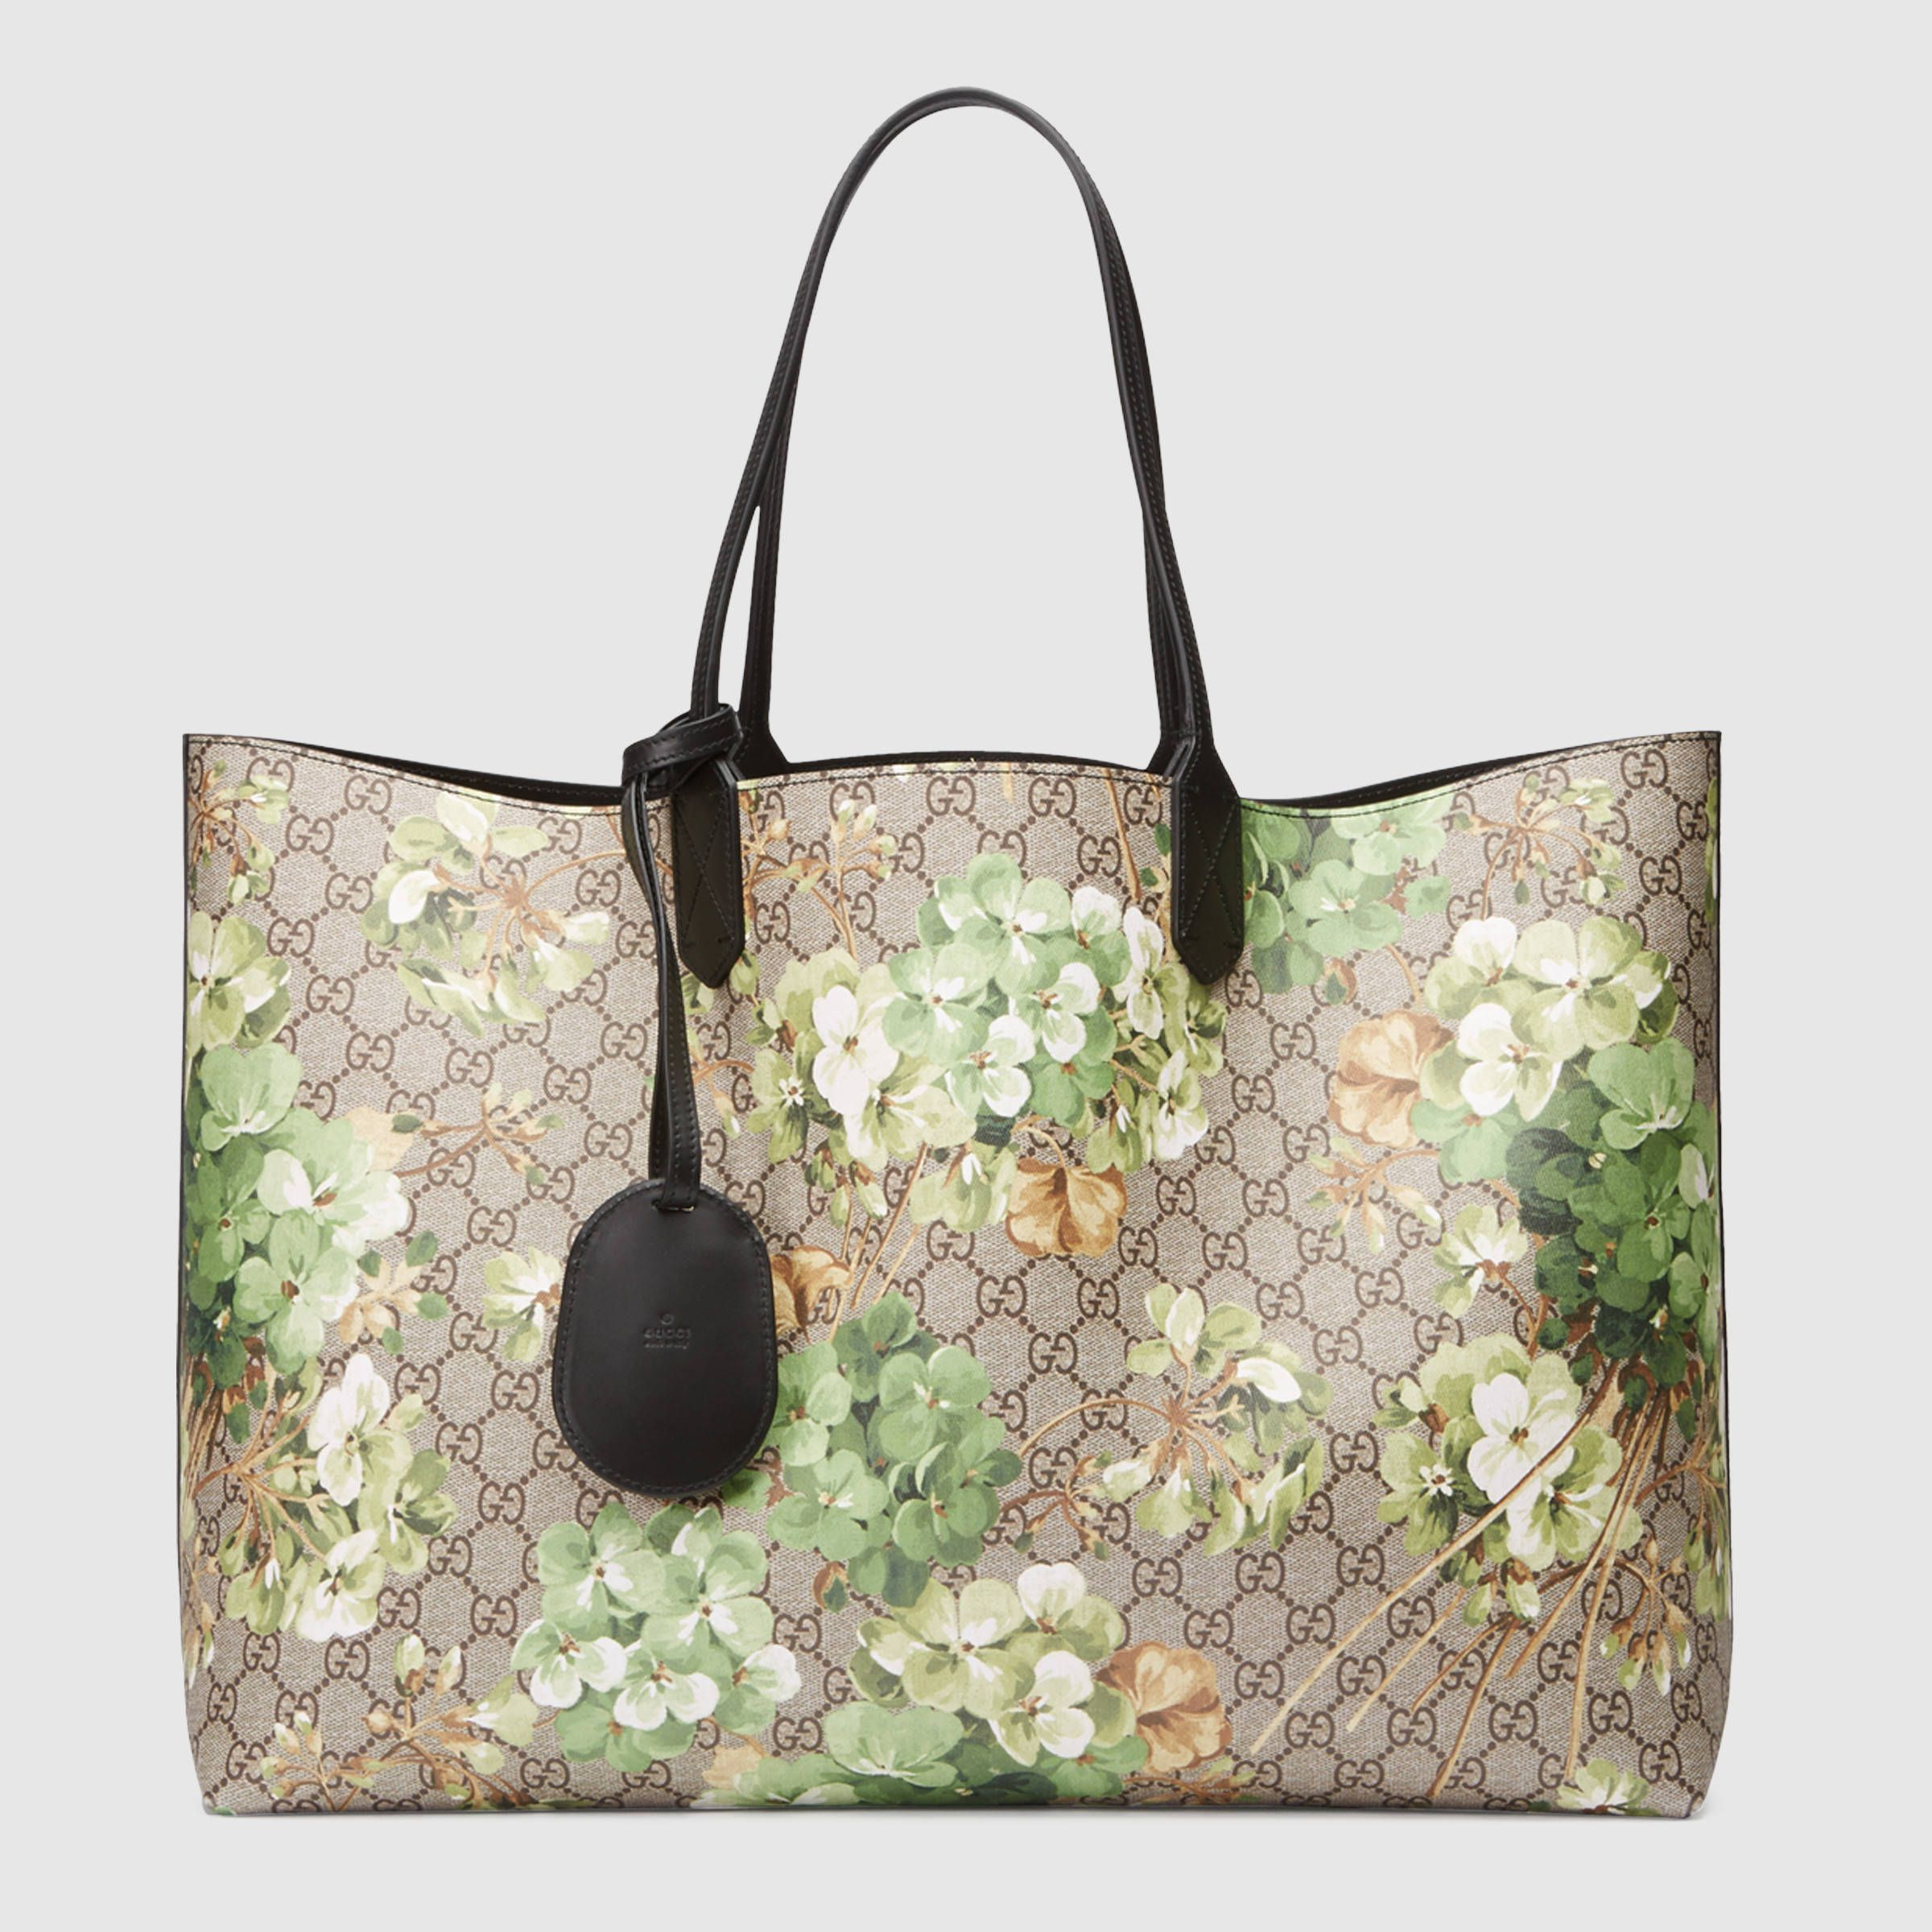 4f780de17db Gucci Women - Reversible GG Blooms leather tote - 368571CU71X8966 ...